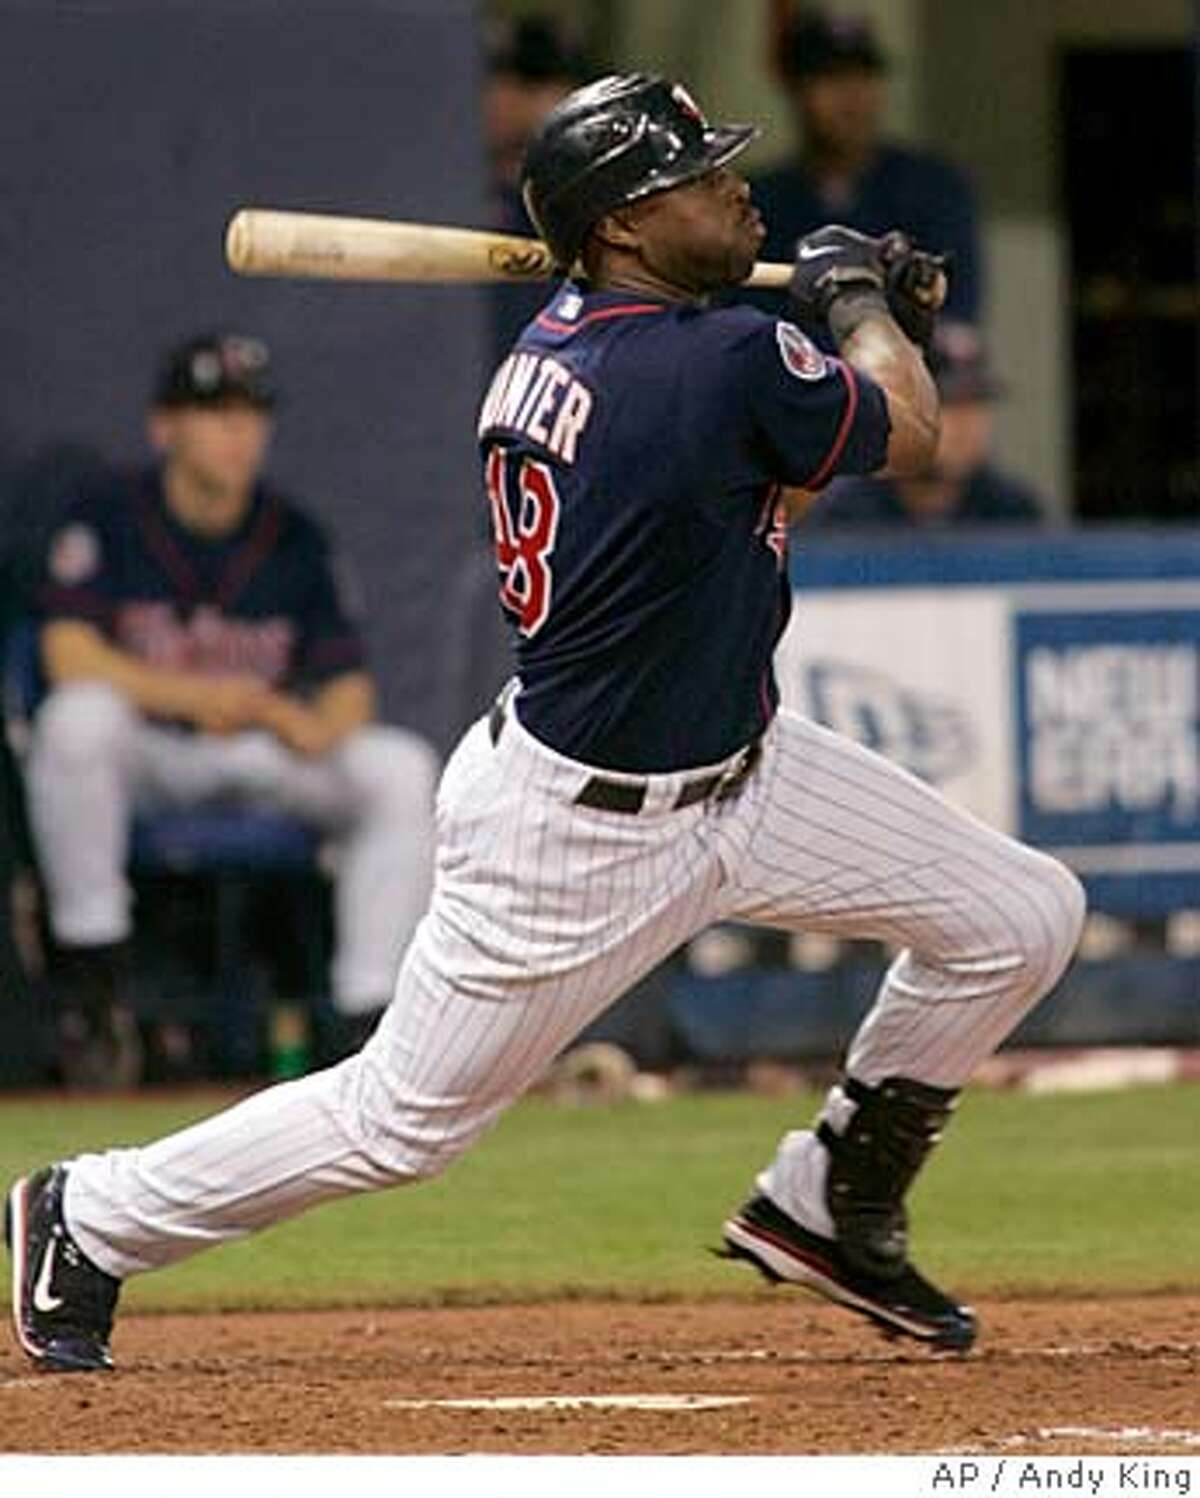 Minnesota Twins' Torii Hunter watches his third inning RBI single during a baseball game against the Texas Rangers in Minneapolis Tuesday, Sept. 18, 2007.(AP Photo/Andy King)